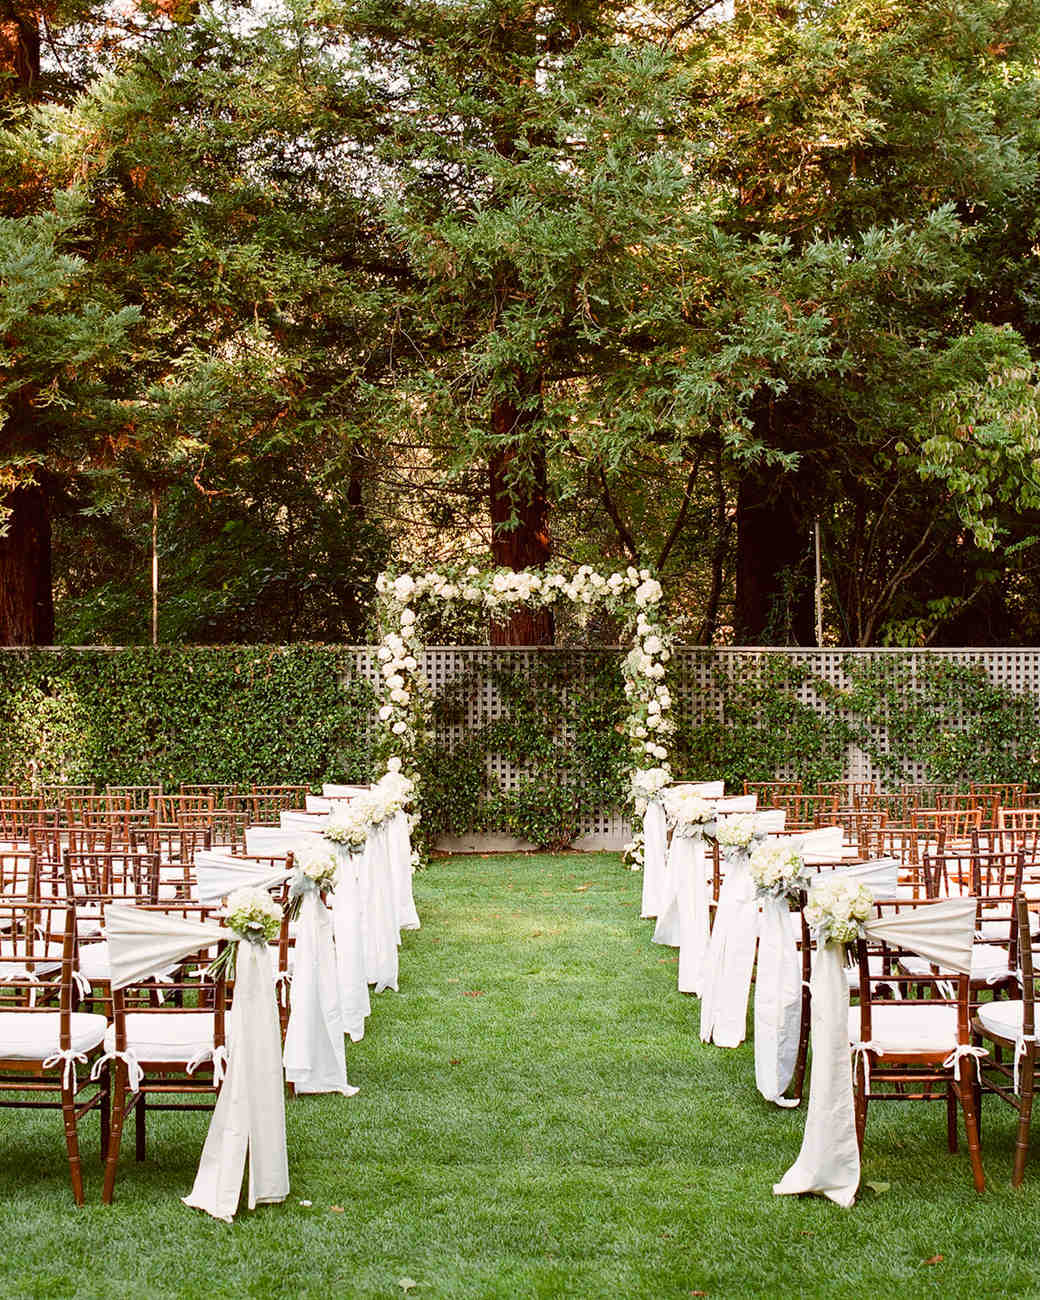 Cute Outdoor Wedding Ideas: A Formal Outdoor Destination Wedding In Napa, California